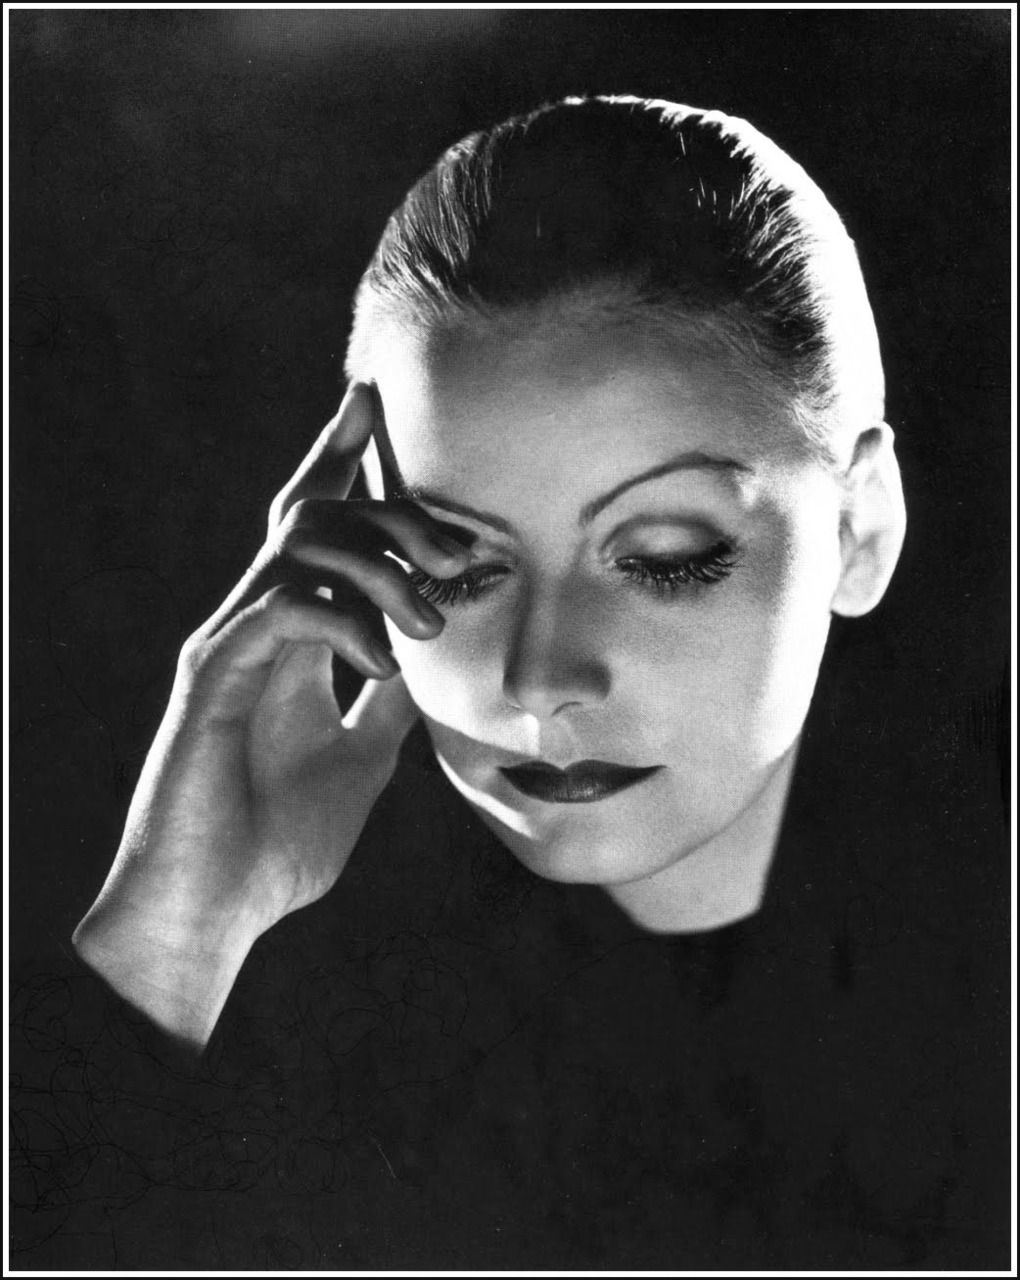 greta garbo weddinggreta garbo biography, greta garbo flickr, greta garbo dress, greta garbo kimdir, greta garbo young, greta garbo and cecil beaton, greta garbo 1990, greta garbo gif, greta garbo height, greta garbo quotes, greta garbo pen, greta garbo anna karenina, greta garbo autograph, greta garbo wiki, greta garbo prajitura, greta garbo wedding, greta garbo color, greta garbo born, greta garbo natal chart, greta garbo photo